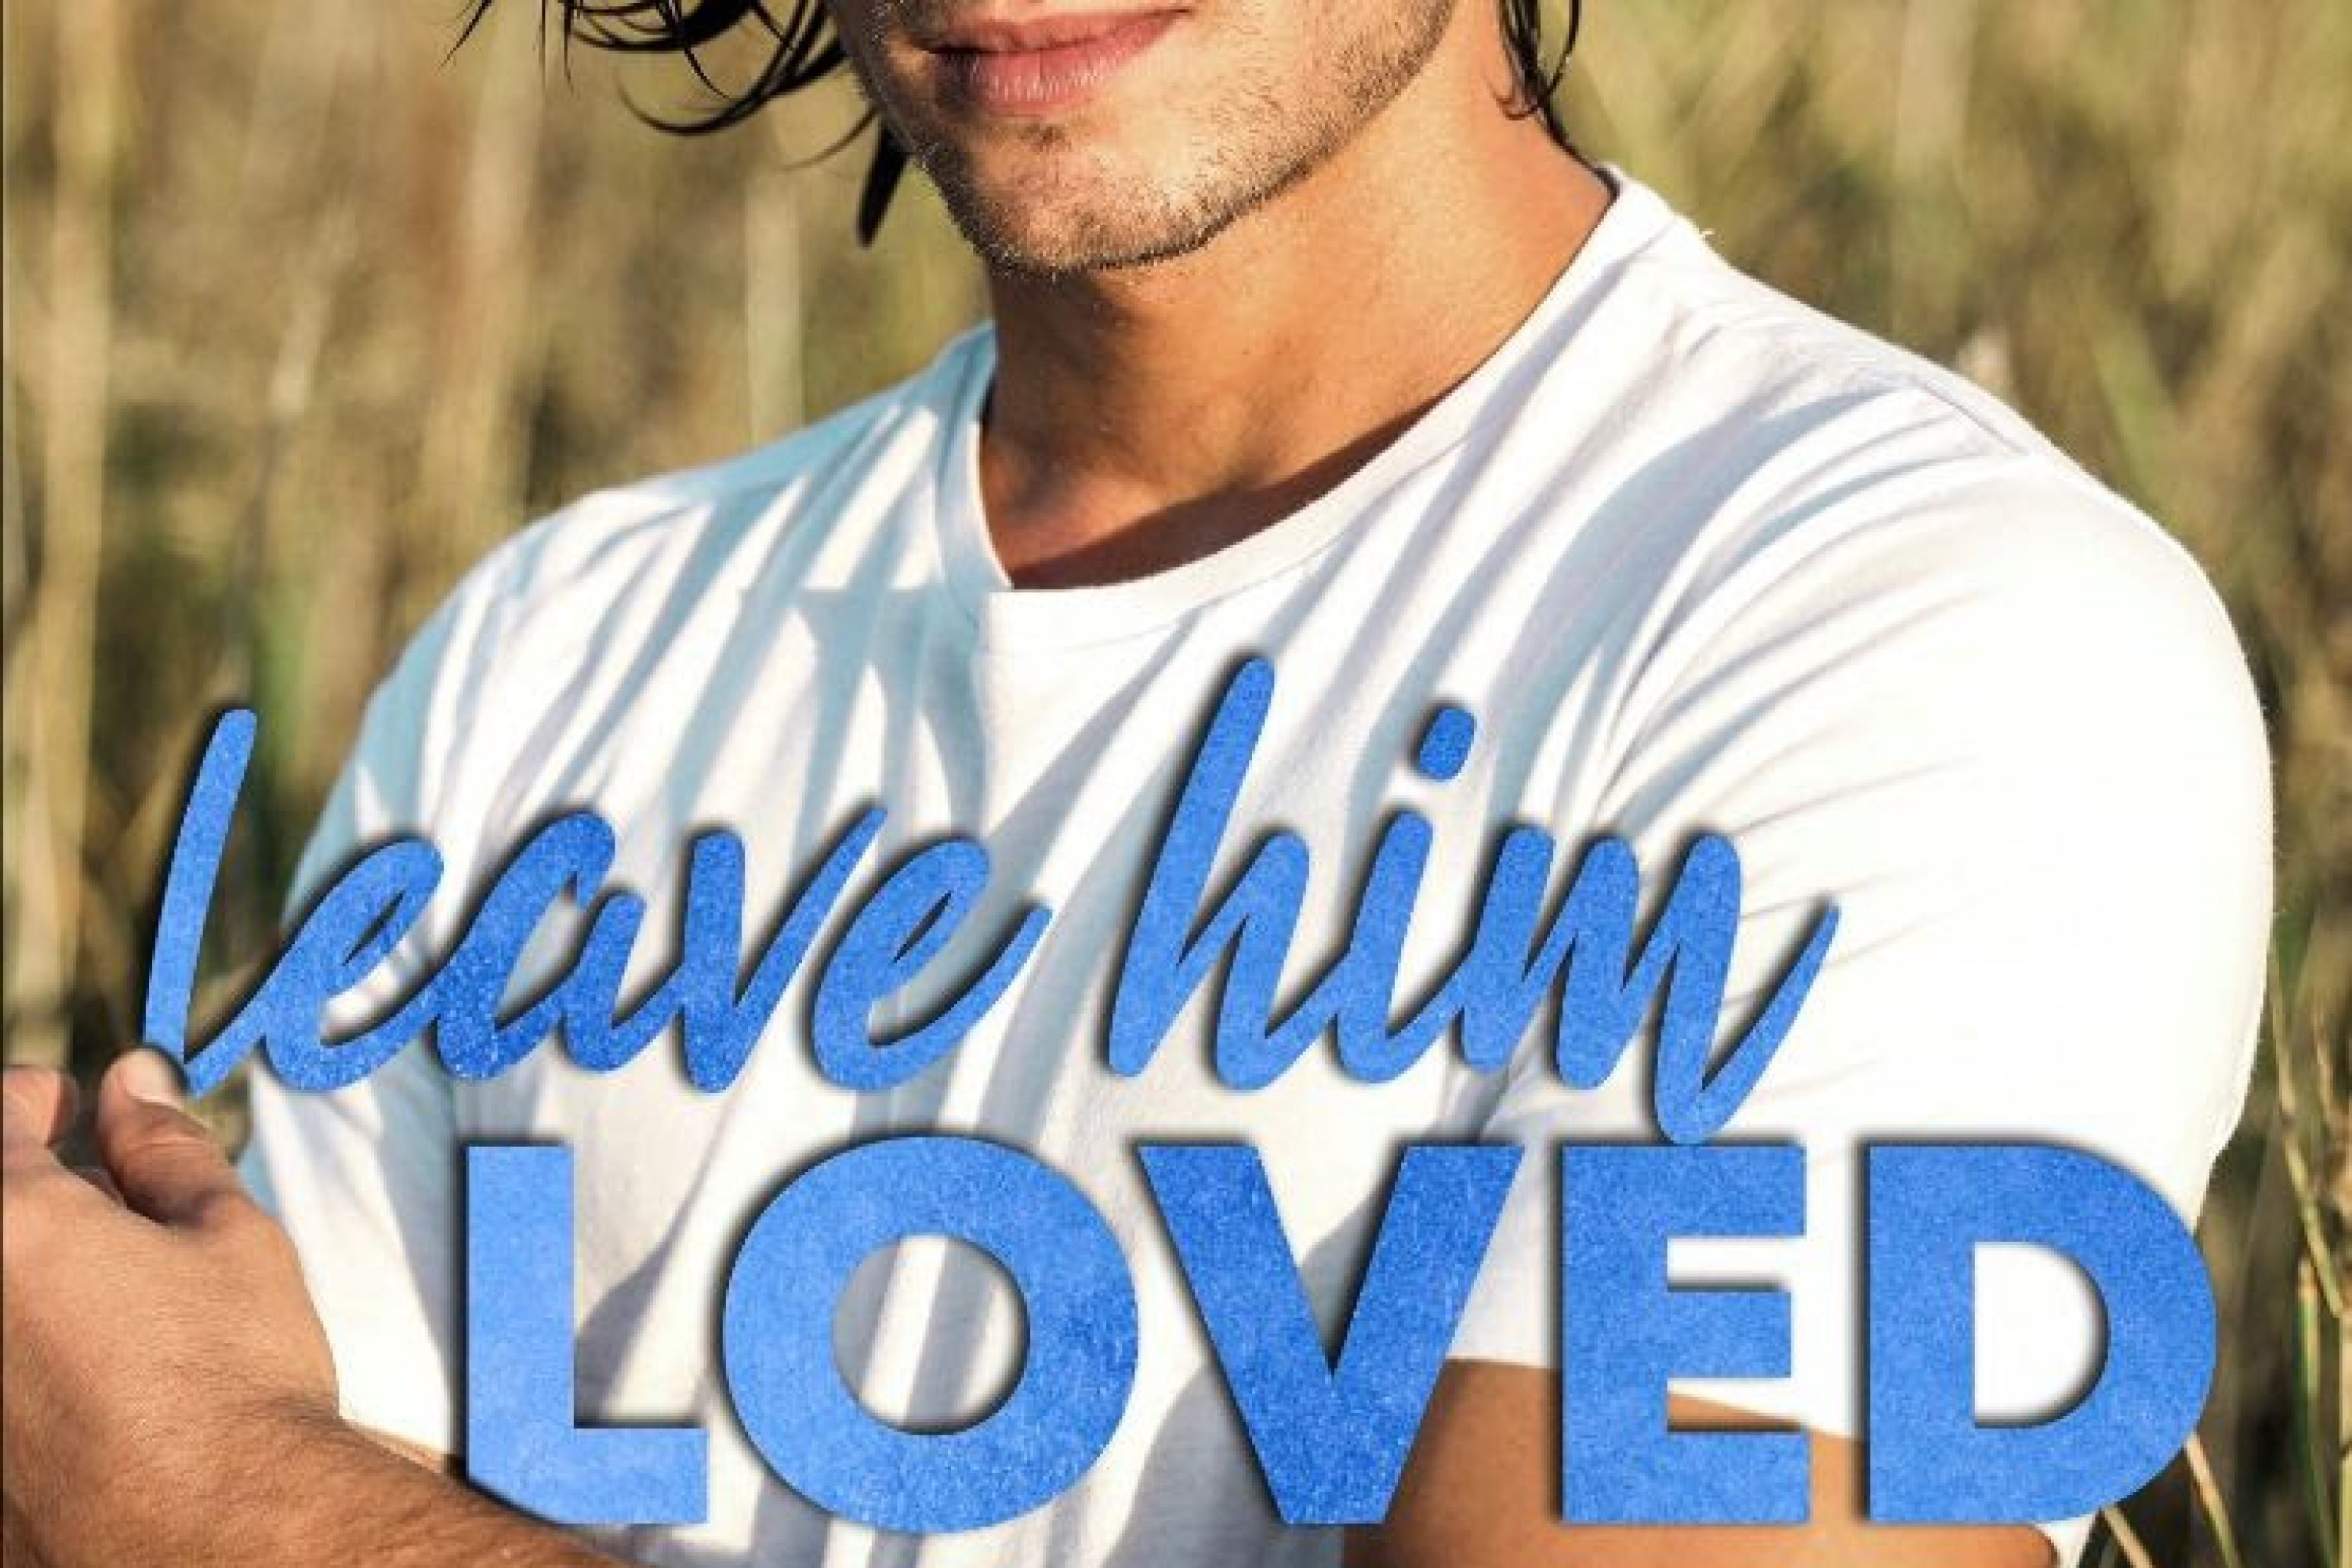 Review: Leave Him Loved by Harloe Rae